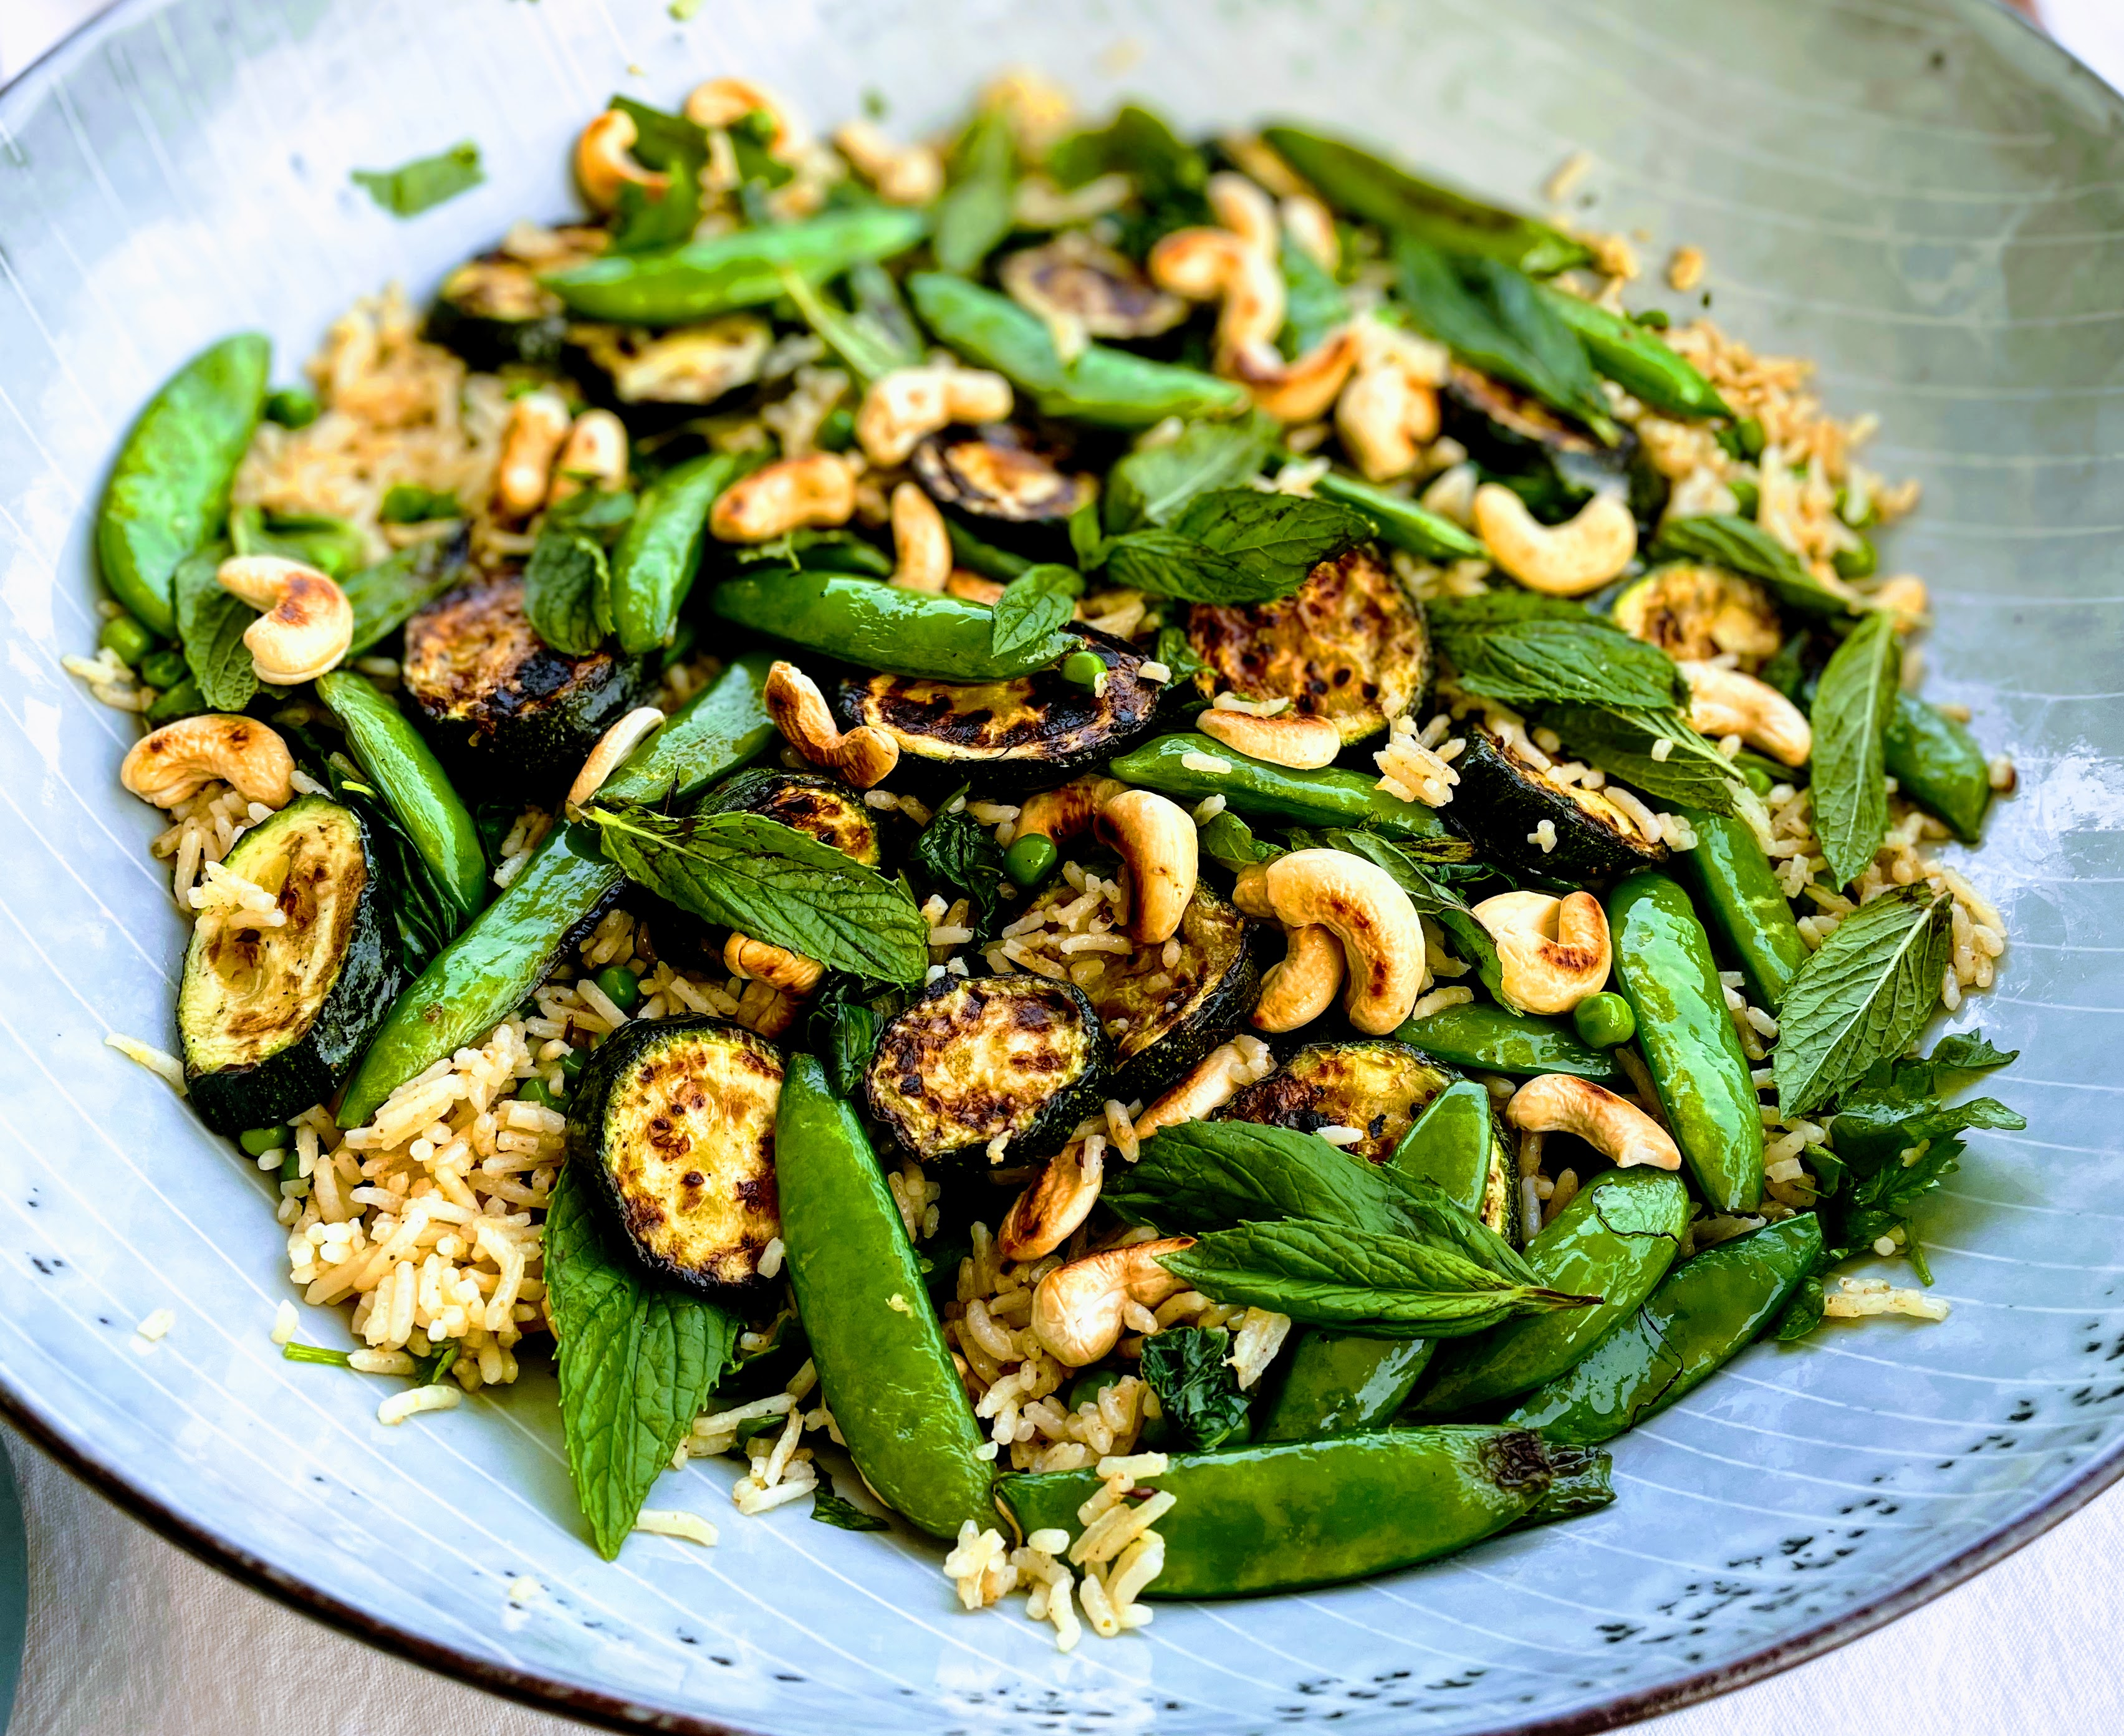 A closer view of the Indian rice salad with summer vegetables. The rice is dotted with peas and coriander, and the courgettes and sugar snap peas are gently charred from the BBQ grill. Everything is scattered with toasted cashews and bright green mint leaves.